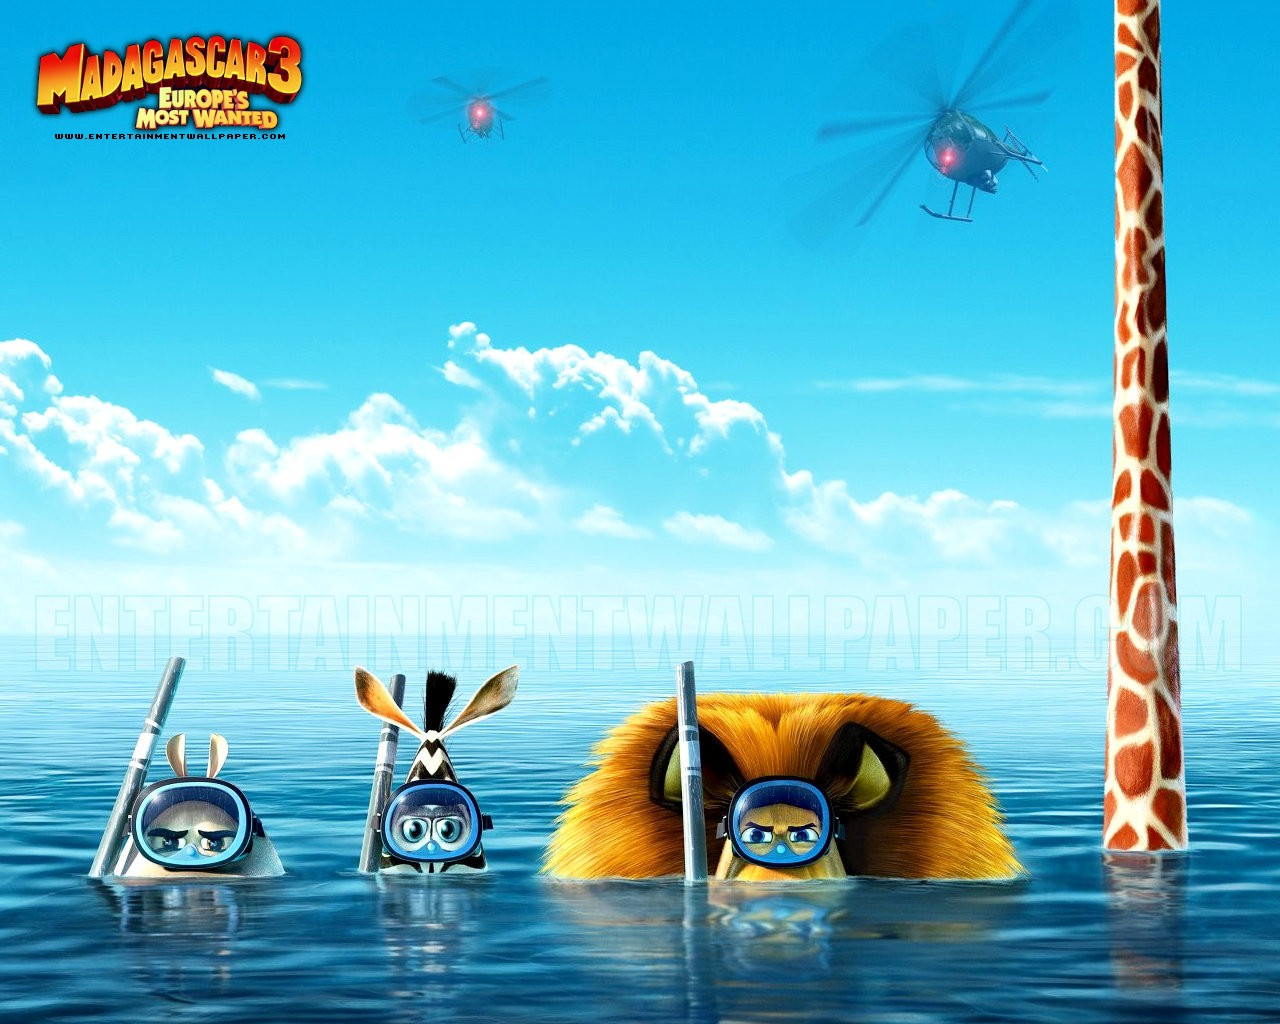 Art news disney desktop wallpaper madagascar 3 wallpaper - Madagascar wallpaper ...